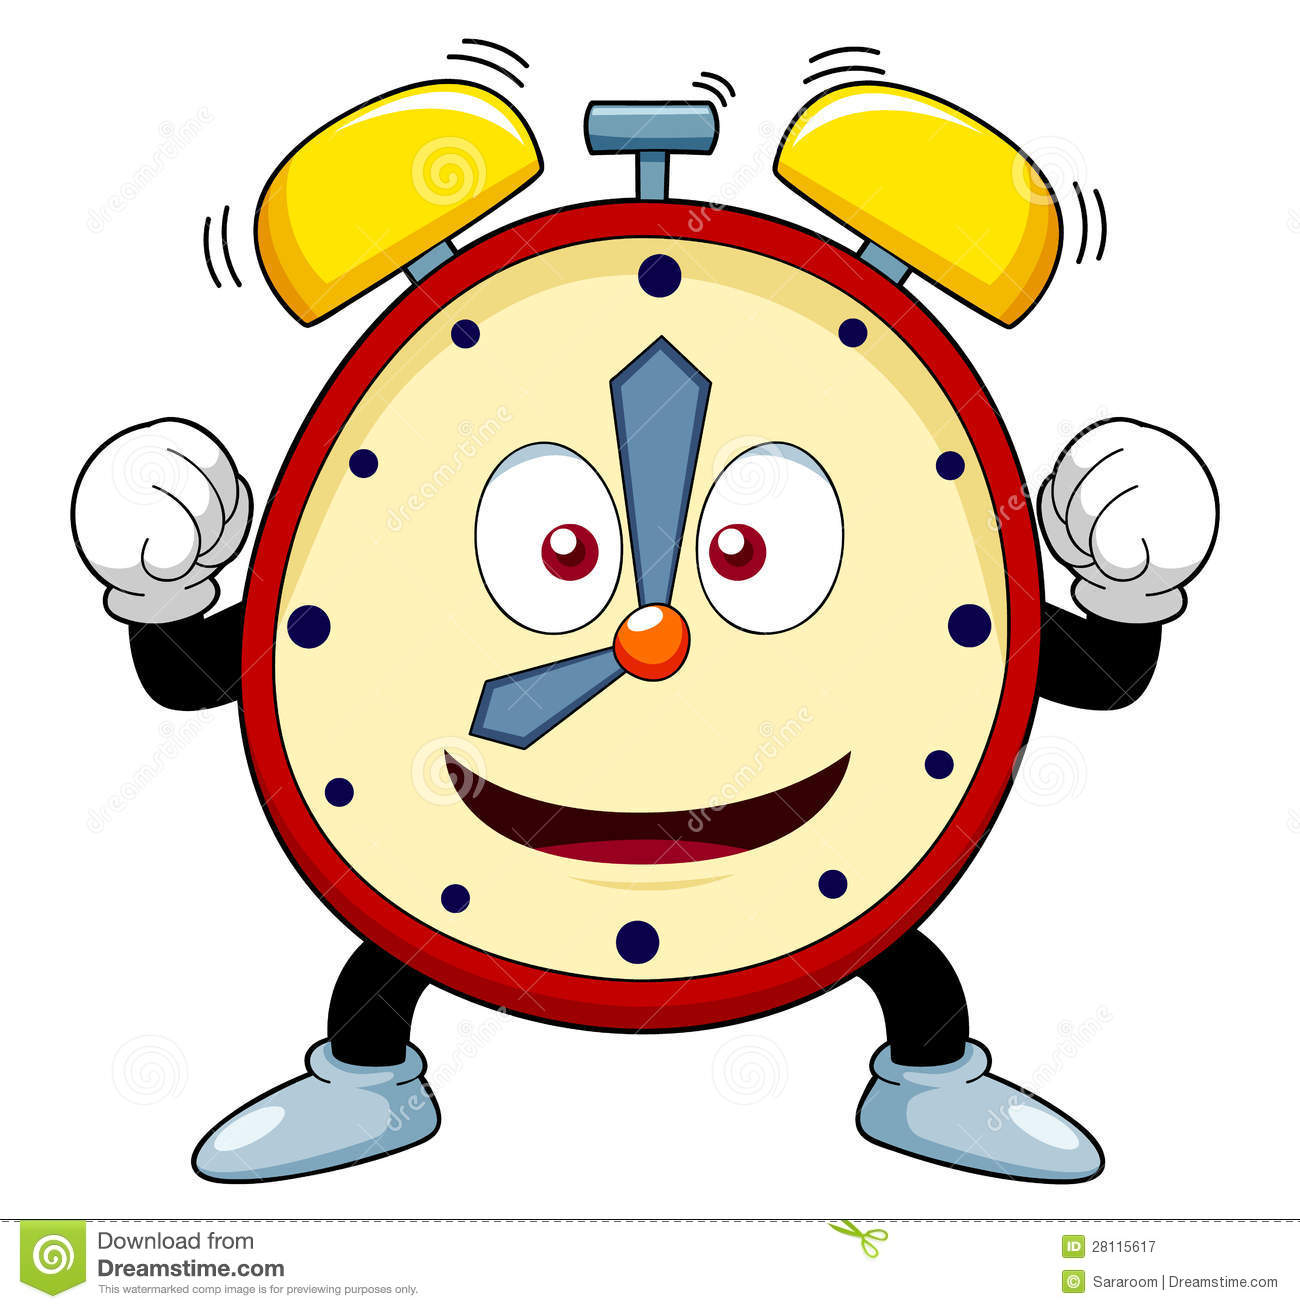 Cute animal with clock clipart freeuse Cute animal with clock clipart - ClipartFest freeuse